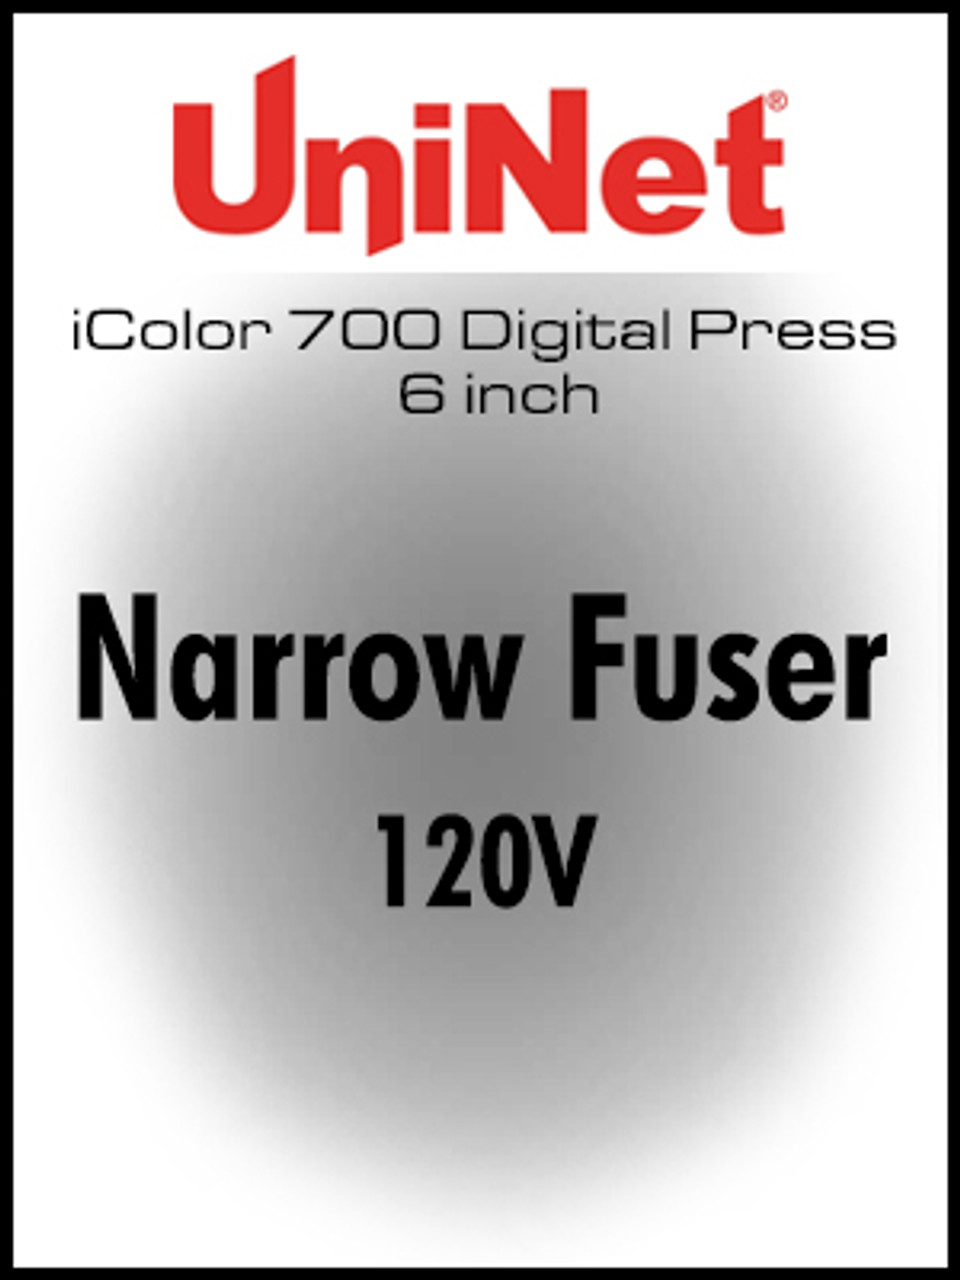 iColor 700 Digital Press 6 inch Narrow Fuser 120V